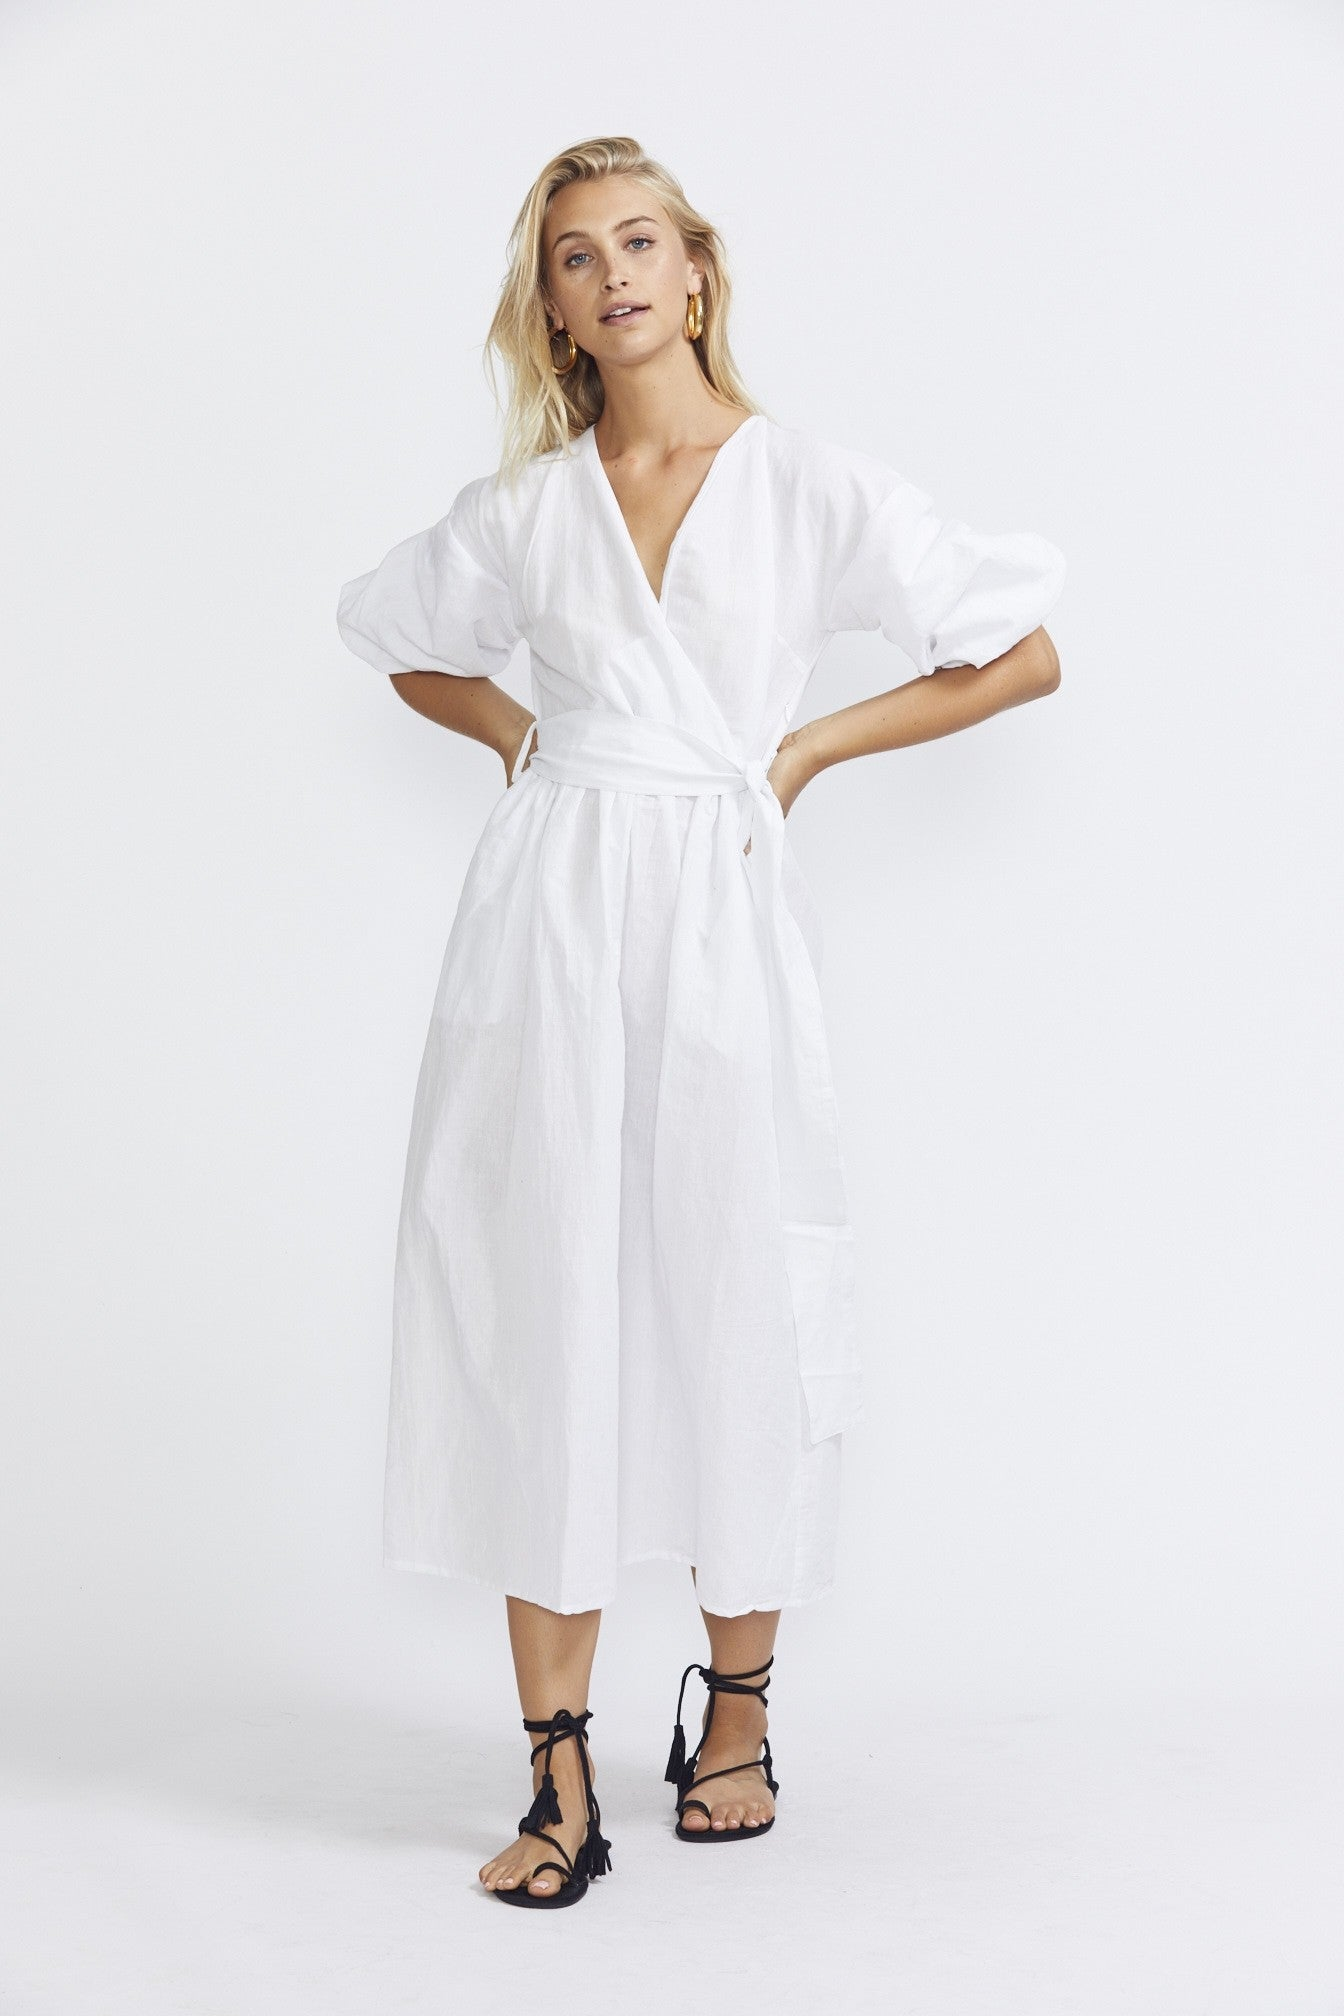 ÉSS THE LABEL Crystal Wrap Dress - White